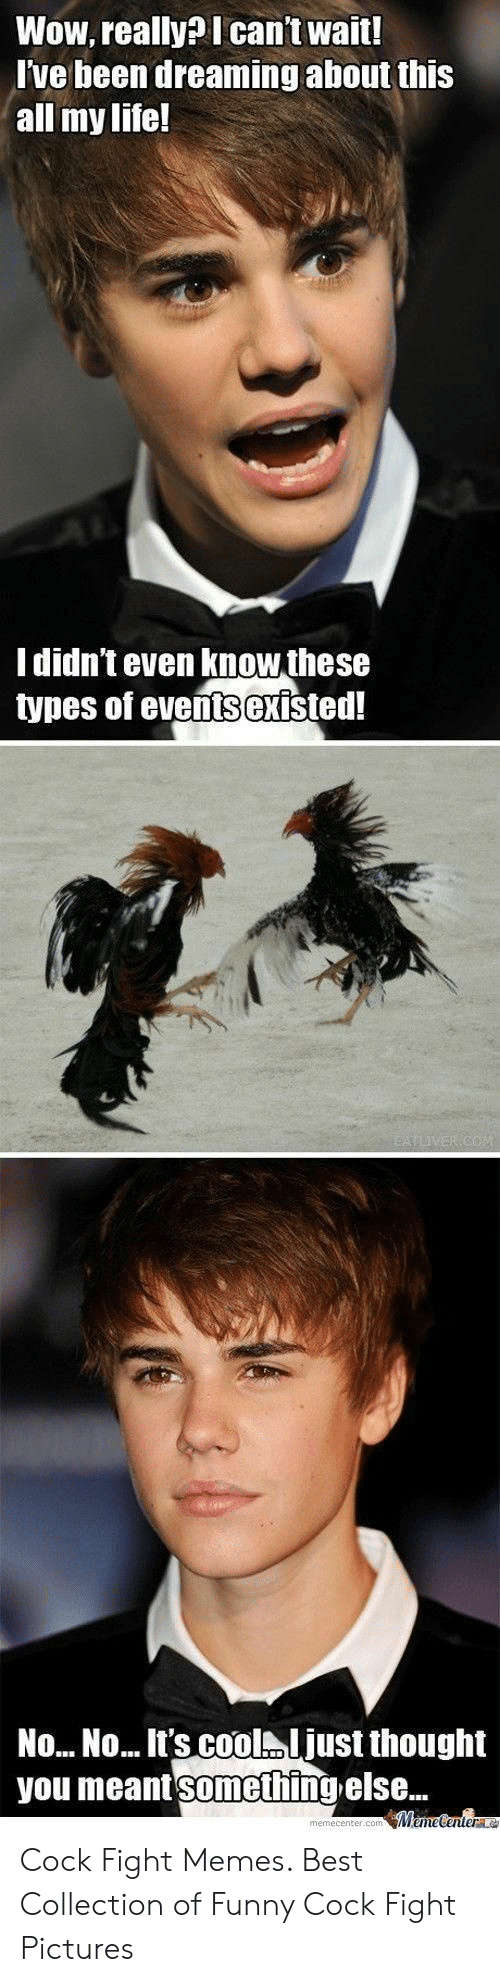 Funny Cock Pics 🐣 25+ best memes about funny cock | funny cock memes